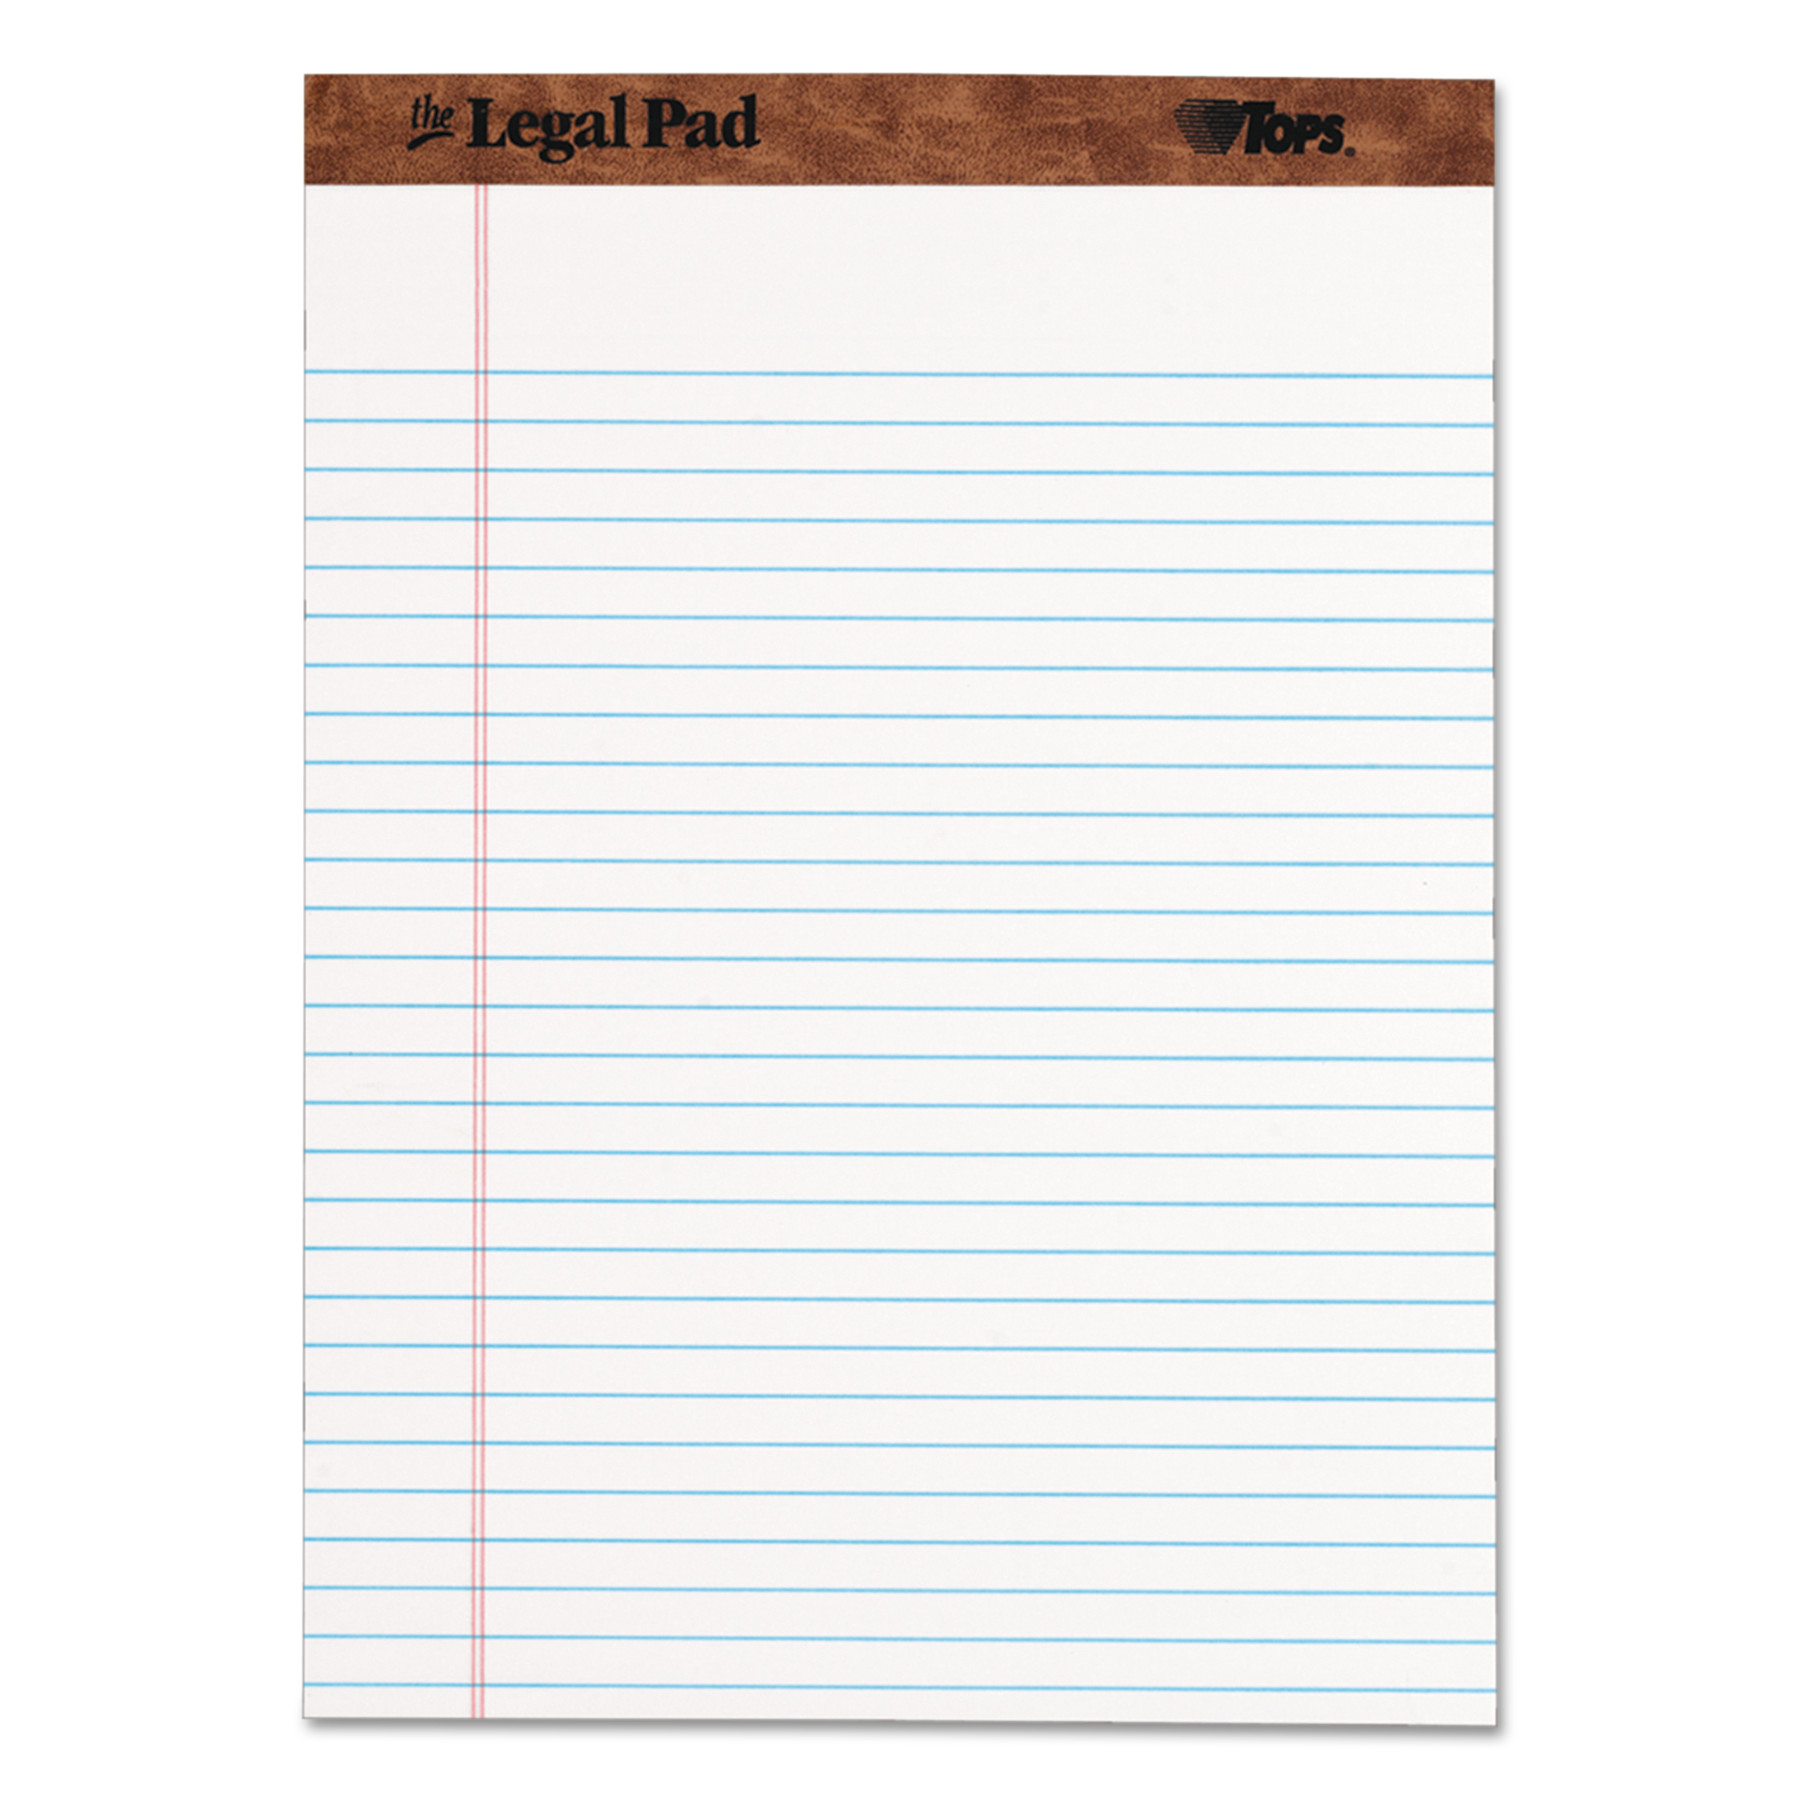 TOPS Paper Pads, Legal Rule, Letter Size, 50 Sheet Pads, Dozen